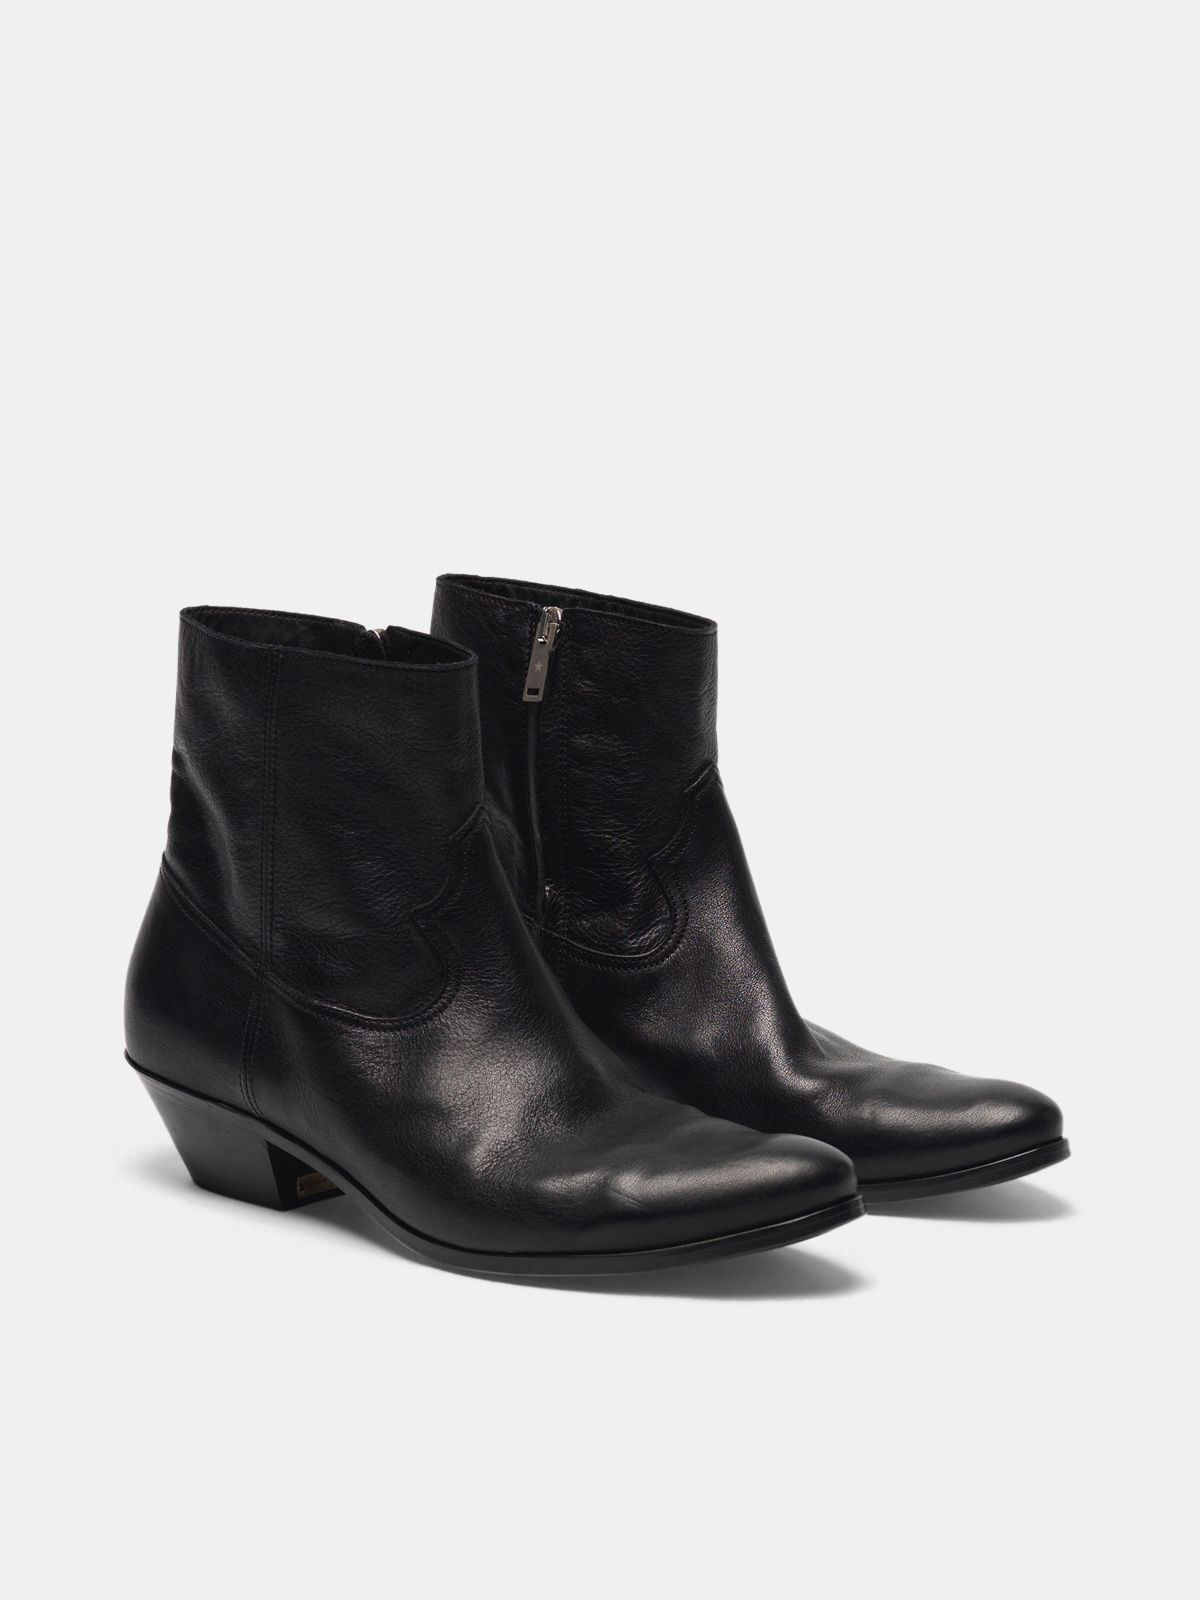 Golden Goose - Younger ankle boots in black leather in